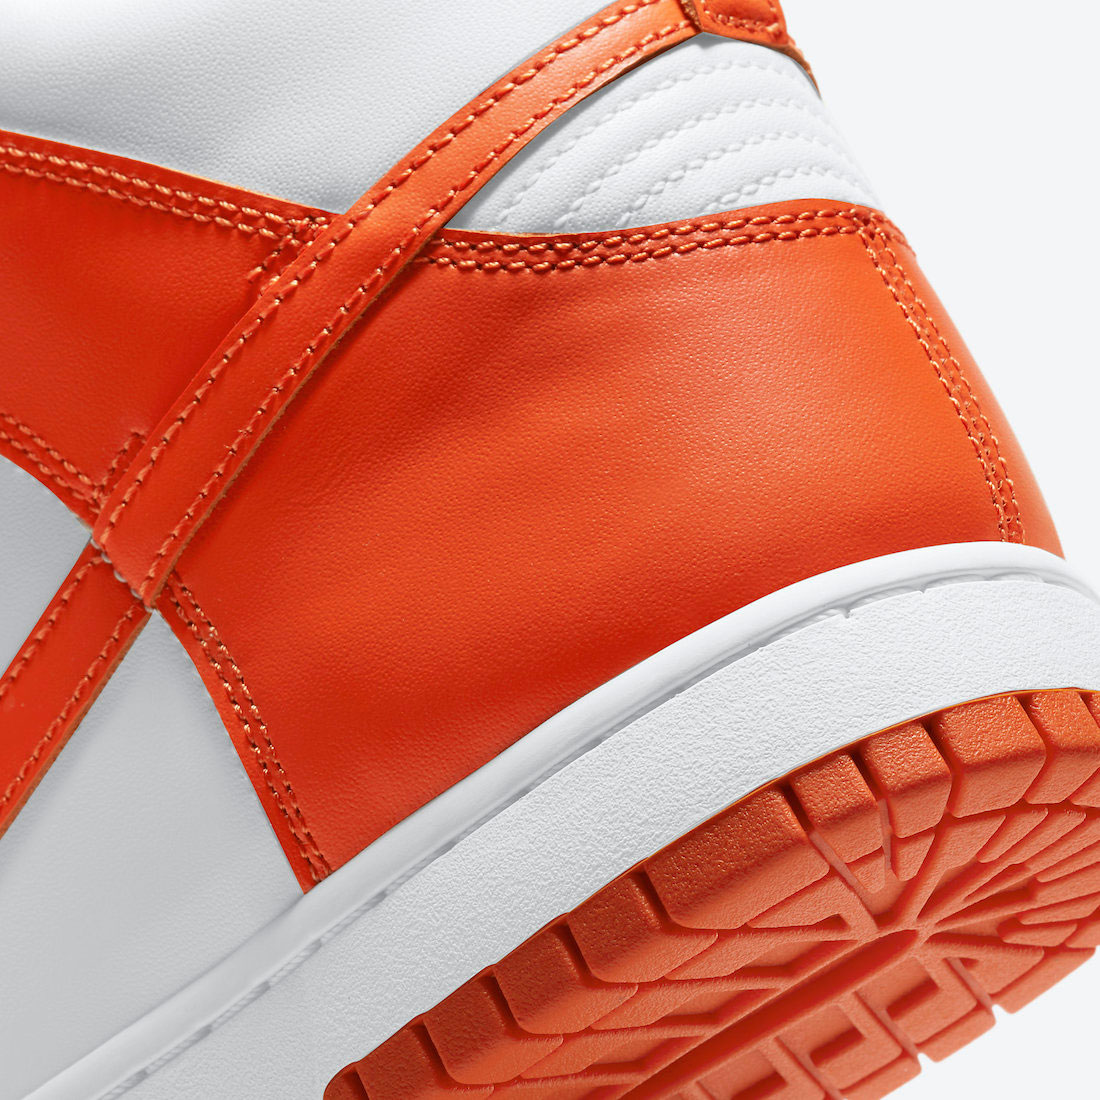 nike-dunk-high-syracuse-orange-release-date-price-resell-where-to-buy-8